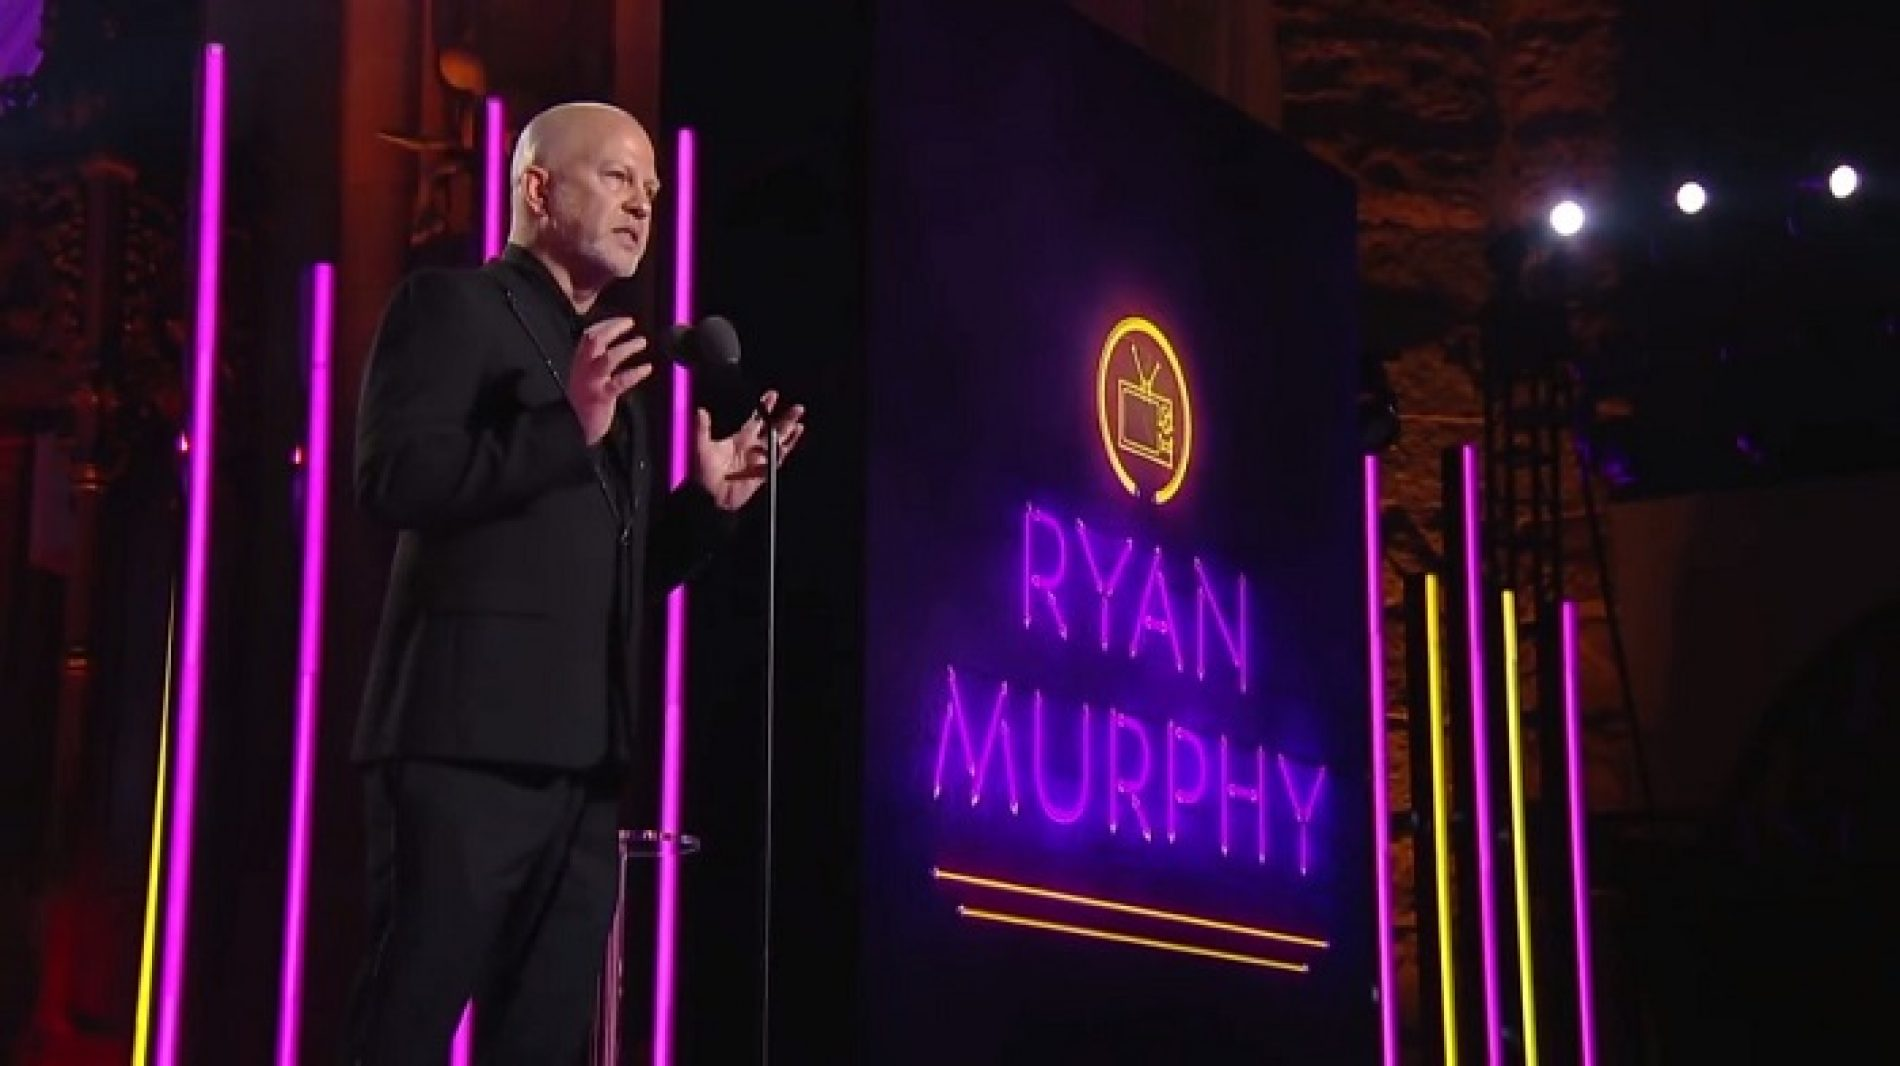 Ryan Murphy accepts Trailblazer Honor with inspiring speech